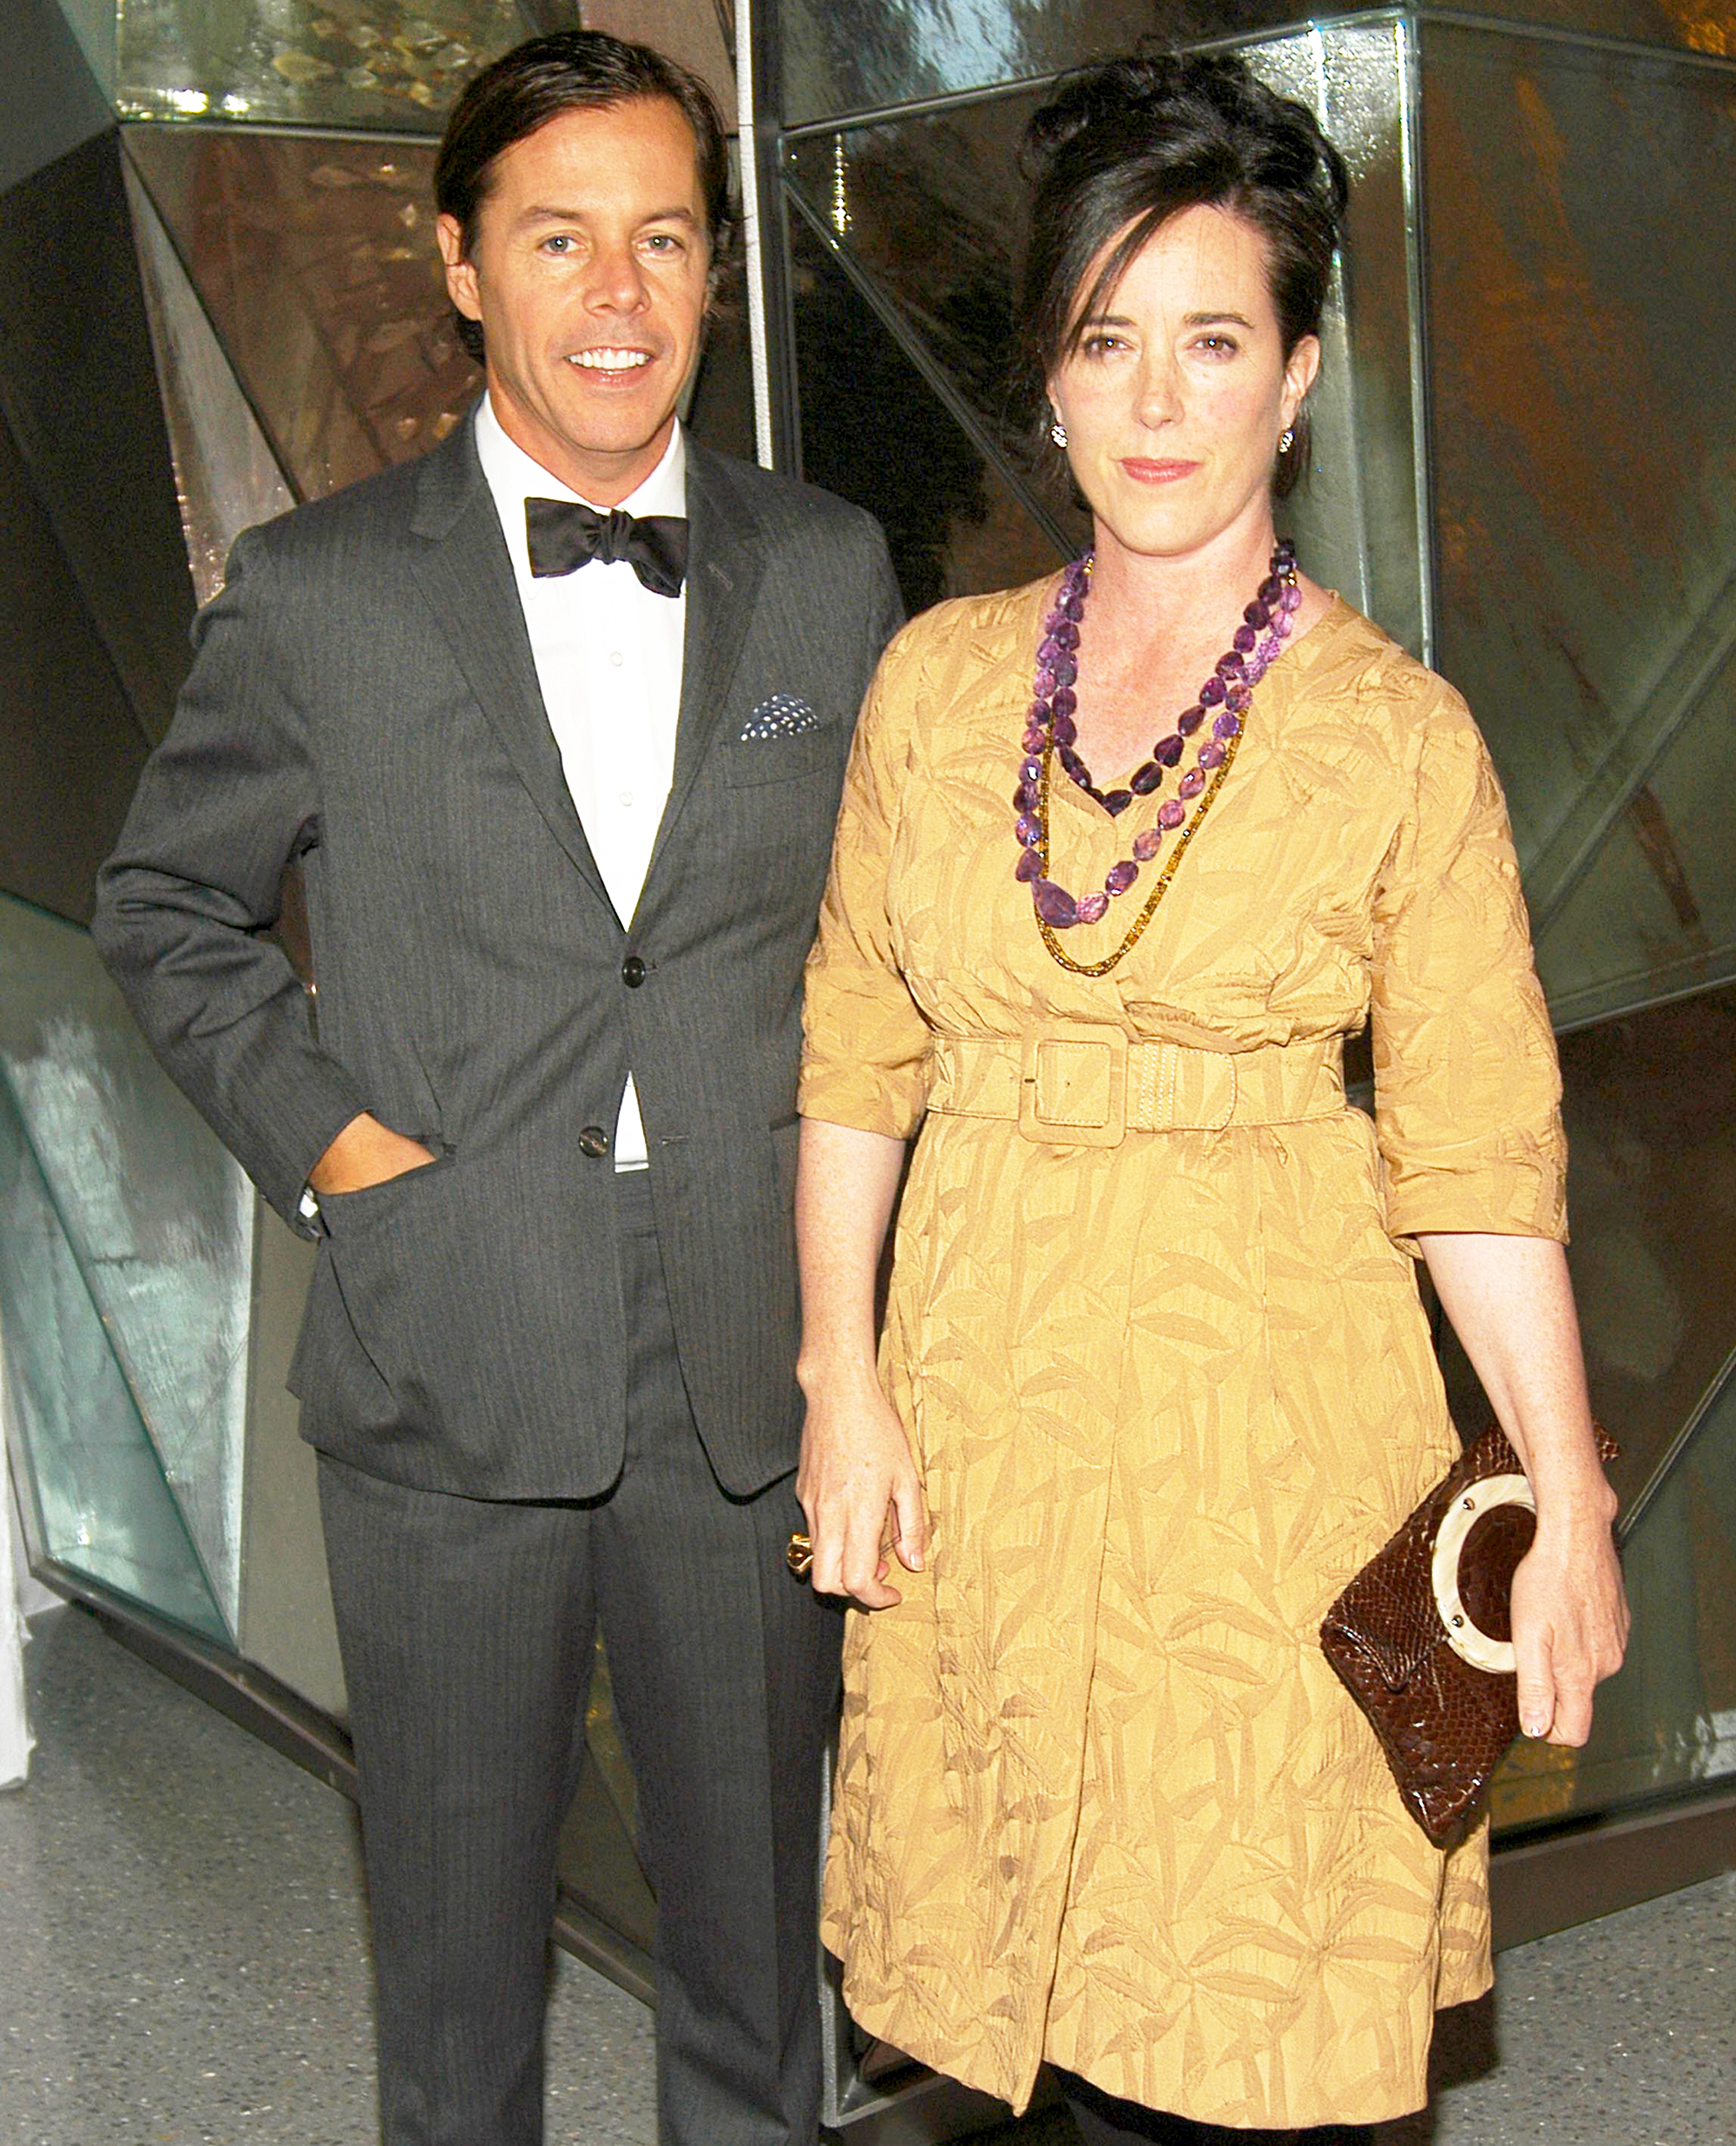 752983b4082e Kate Spade, Husband Were Separated Before Her Suicide